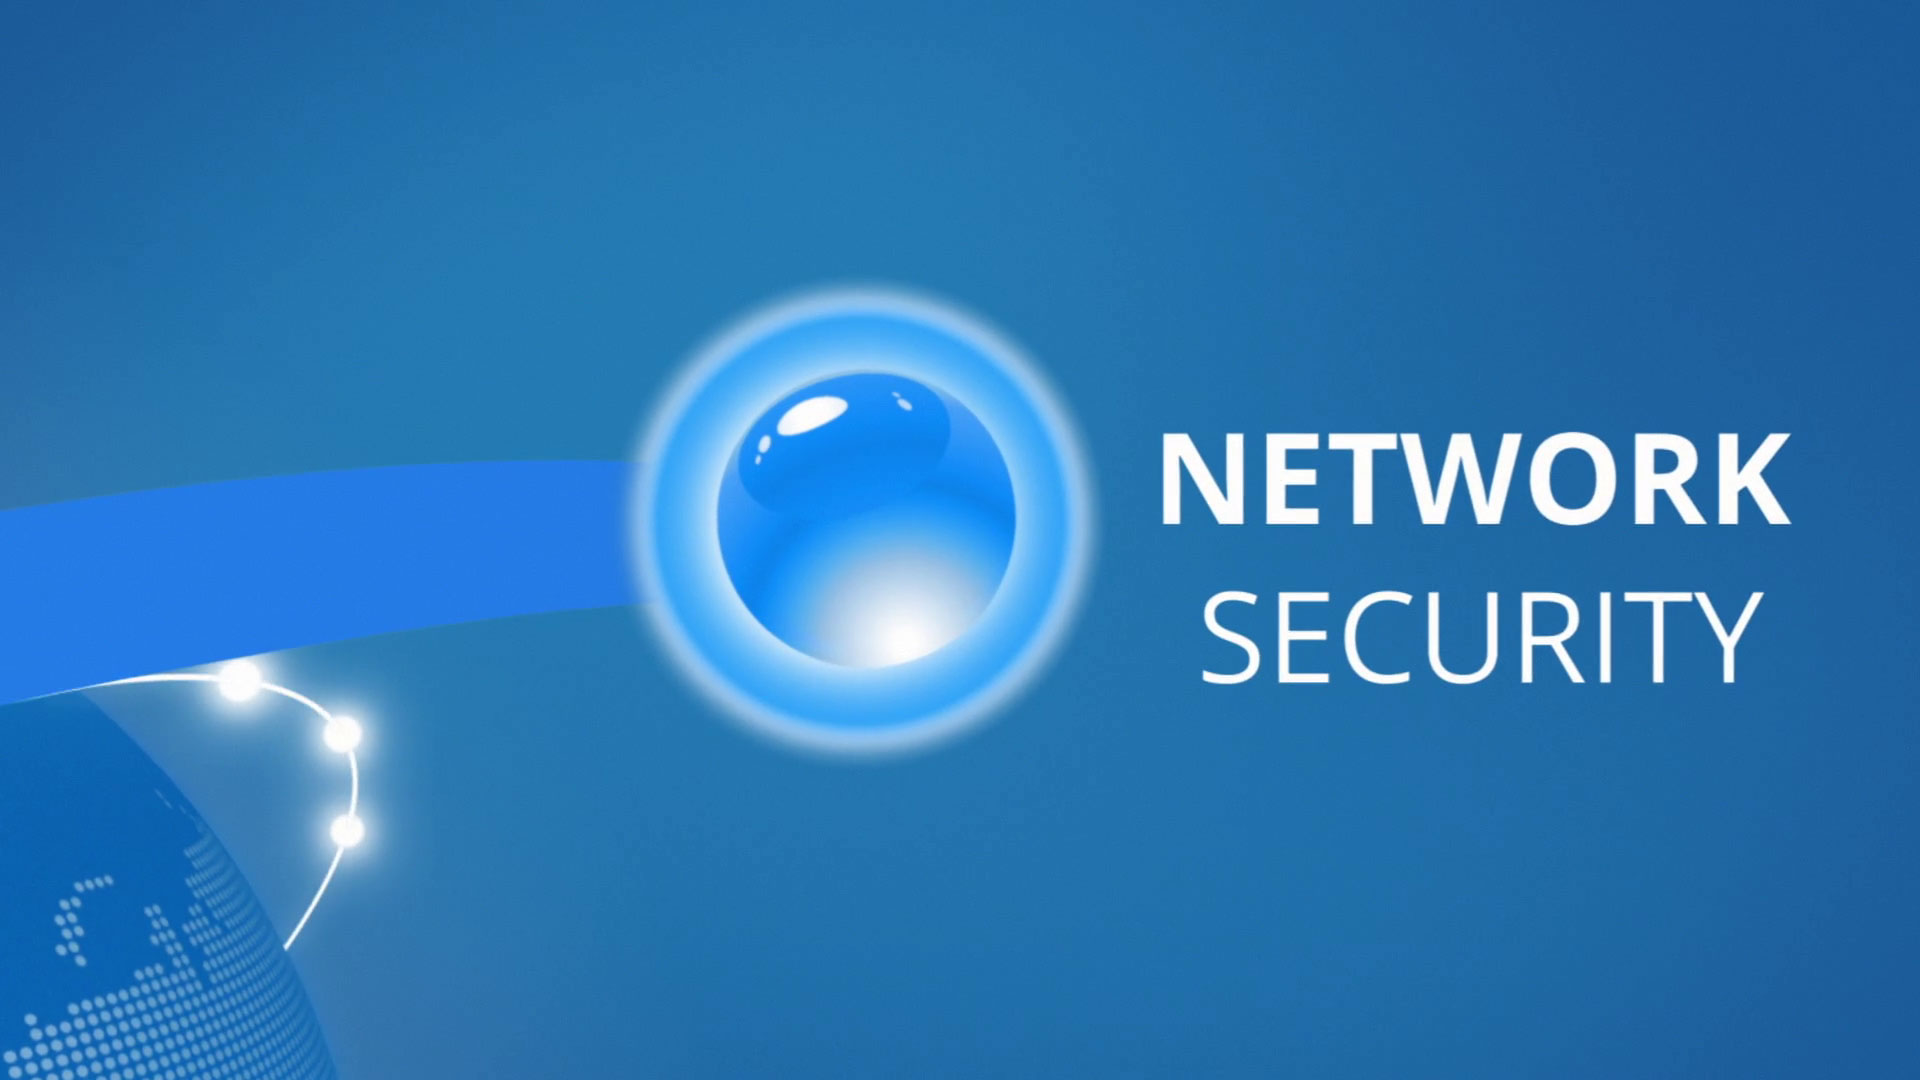 network and security Wwwcryptocurrencyclassescom.